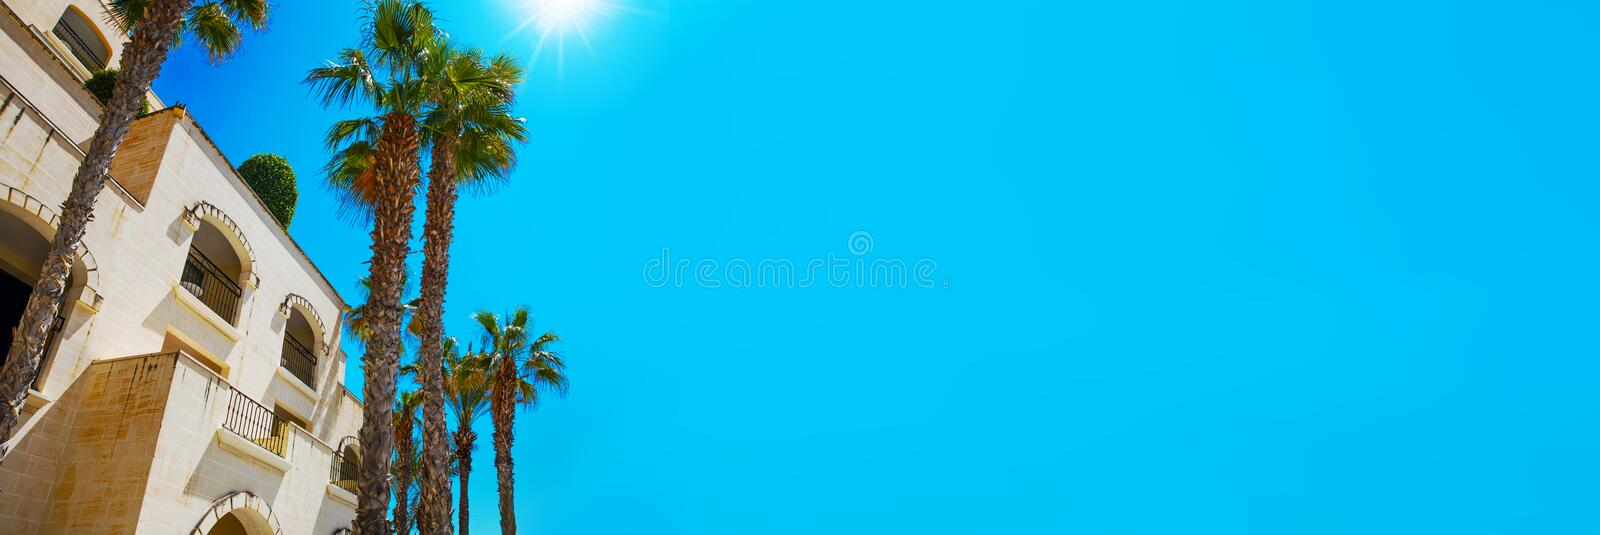 Mediterranean architecture with palm trees and blue sky template royalty free stock image